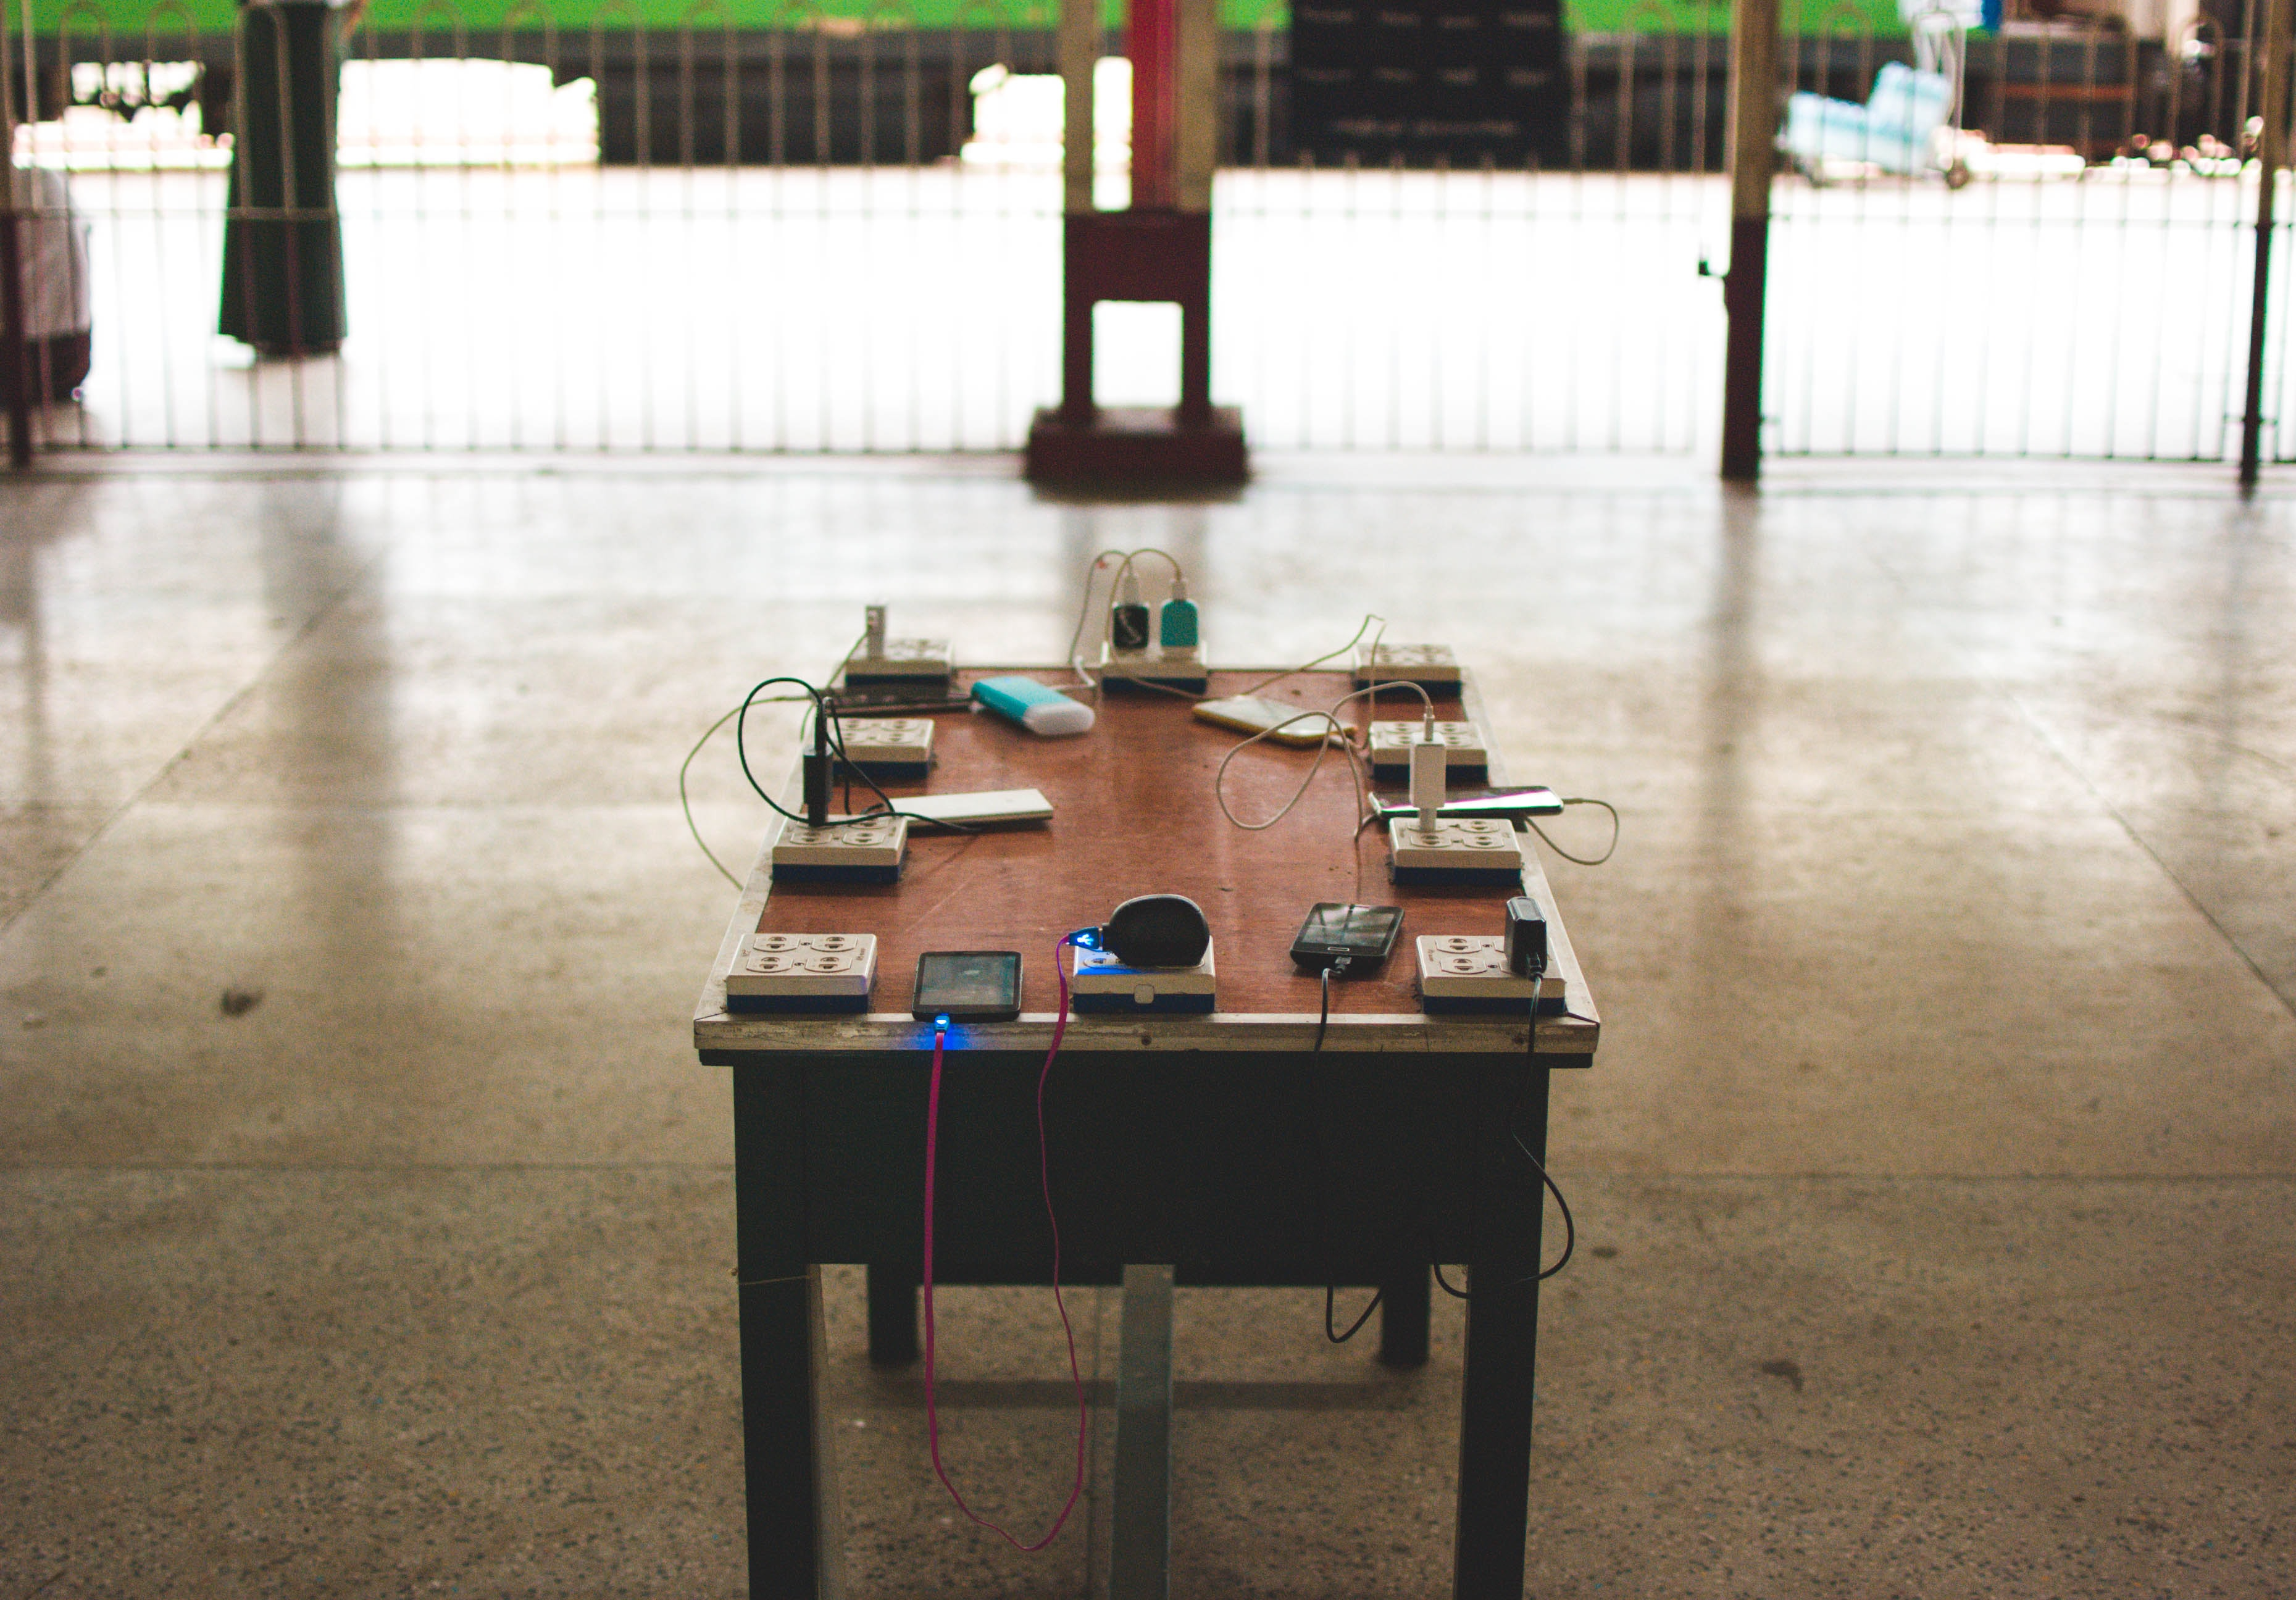 power sockets and travel adapters on brown wooden table